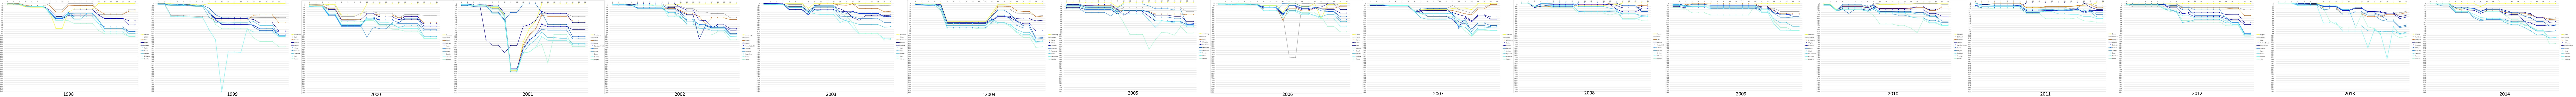 1998-2014 Grand Tours – Sicycle